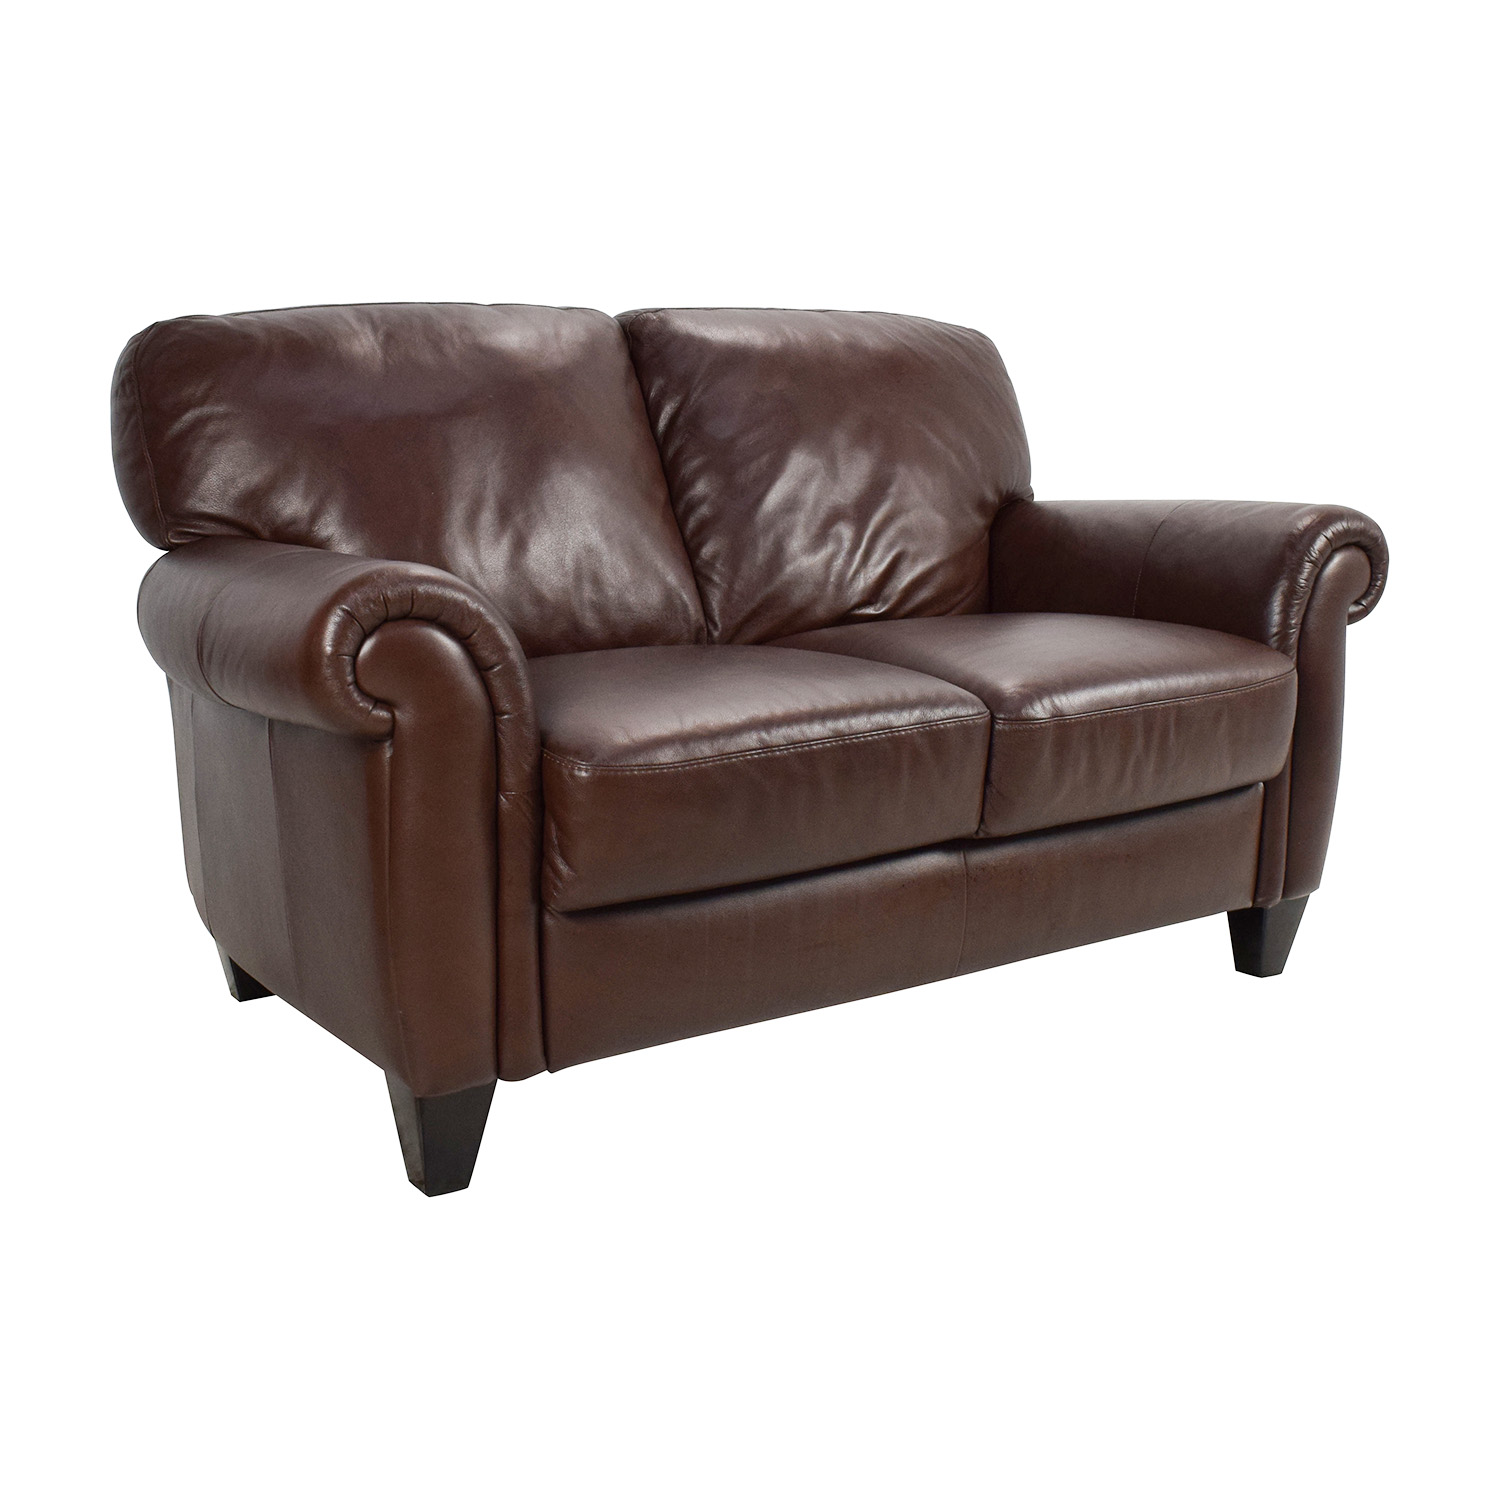 Leather Loveseat 50 Off Brown Roll Arm Leather Loveseat Sofas